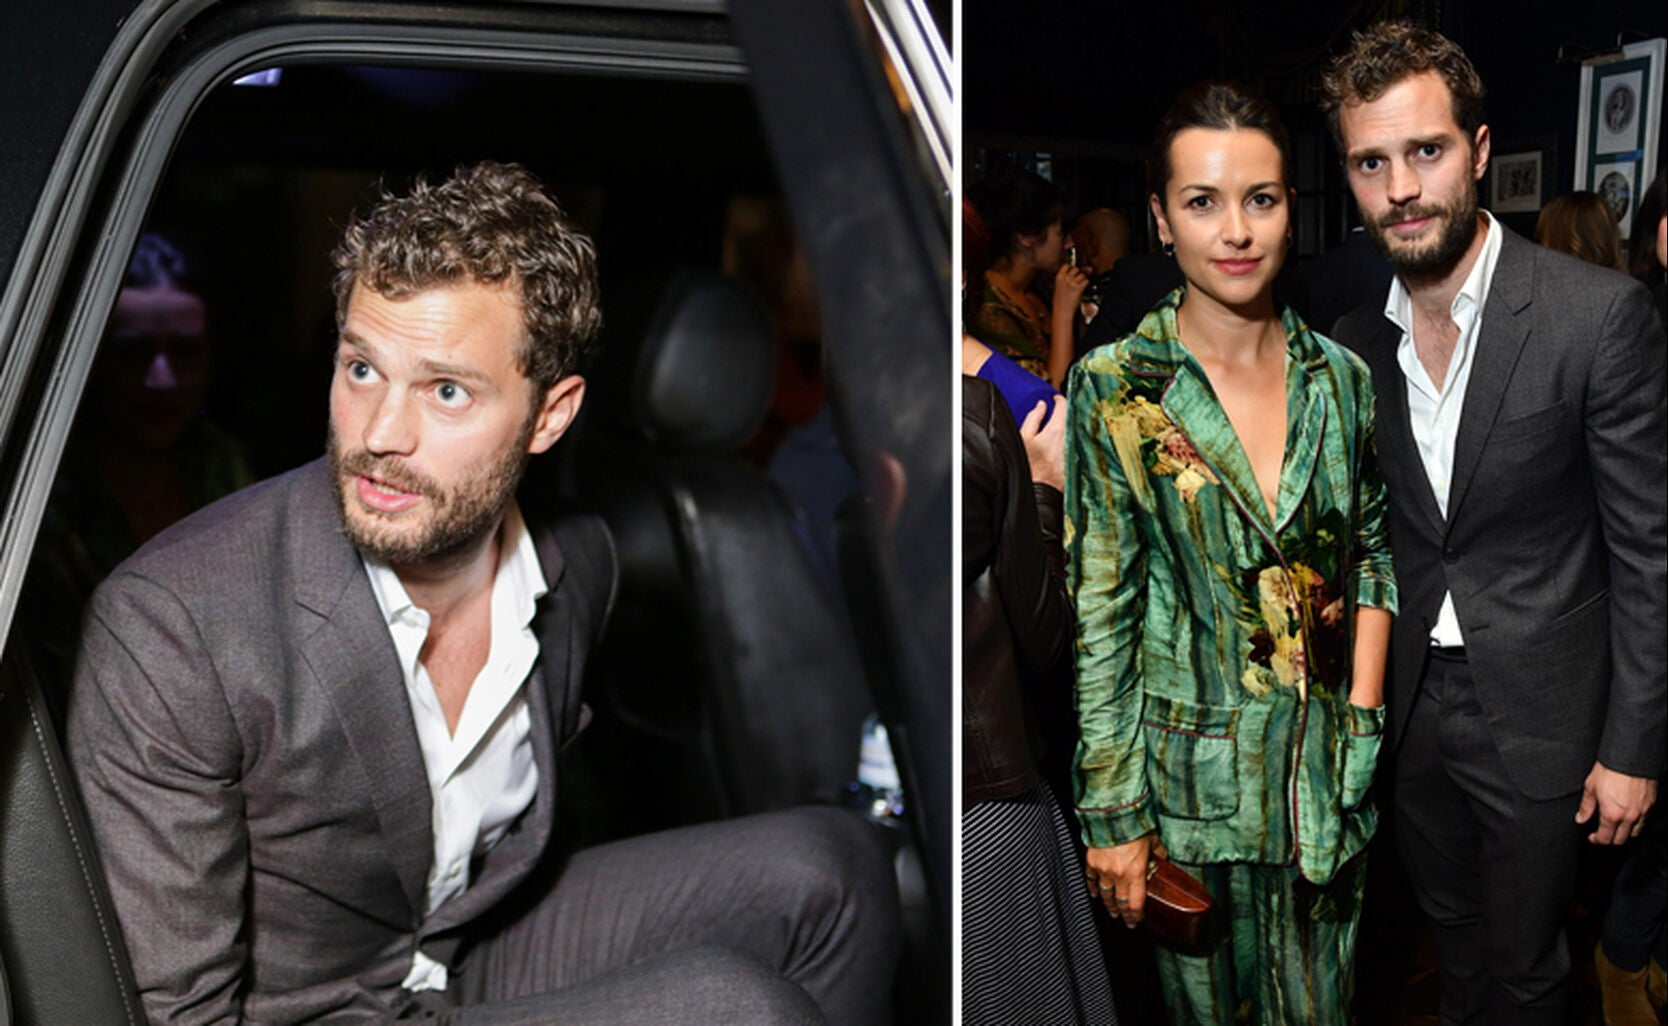 Jaimie Dornan and his wife, Amelia Warner